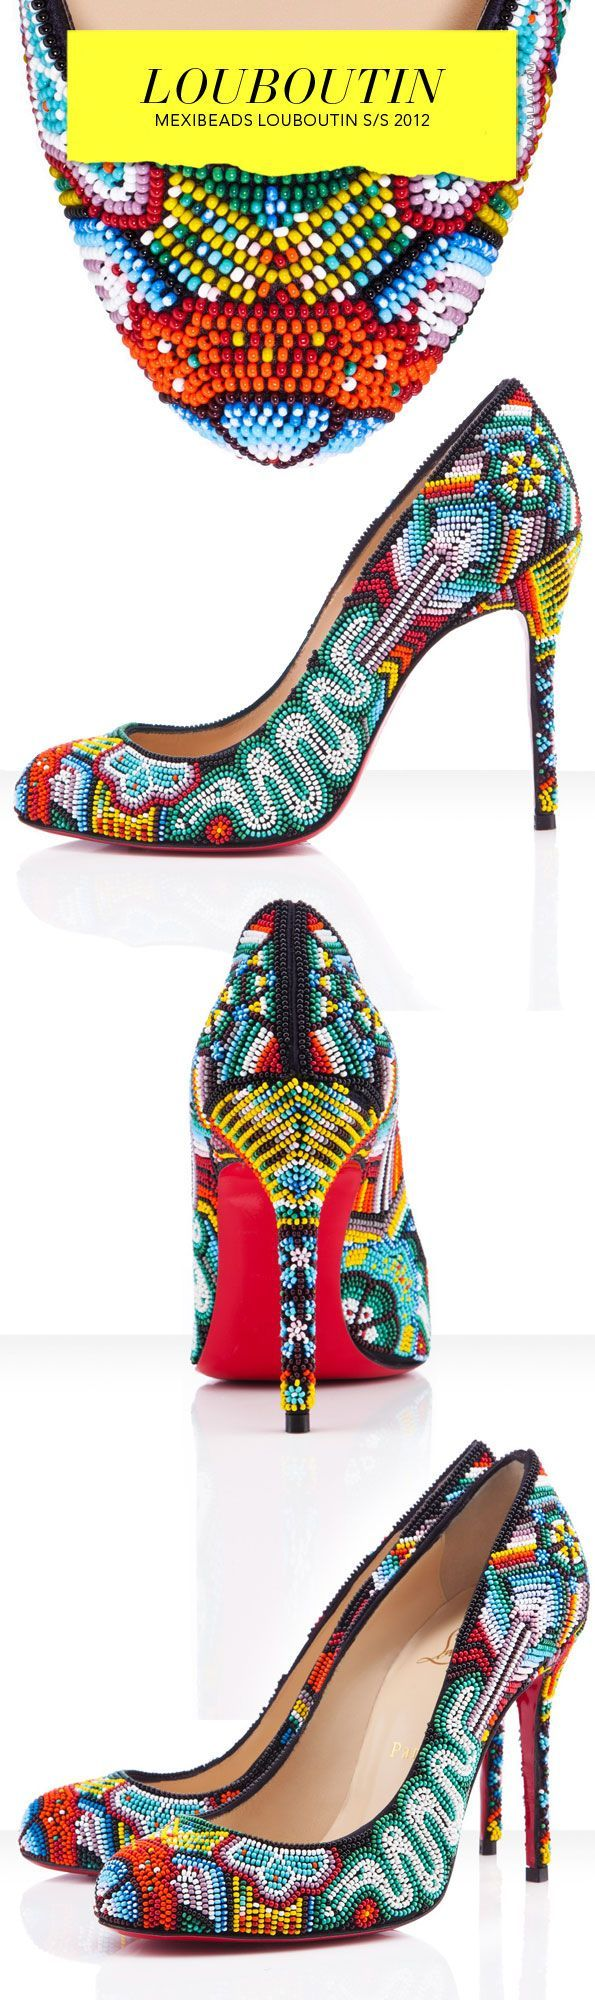 These Are Gorgeous What A Work Of Art #shoes, #women, facebook.com/...